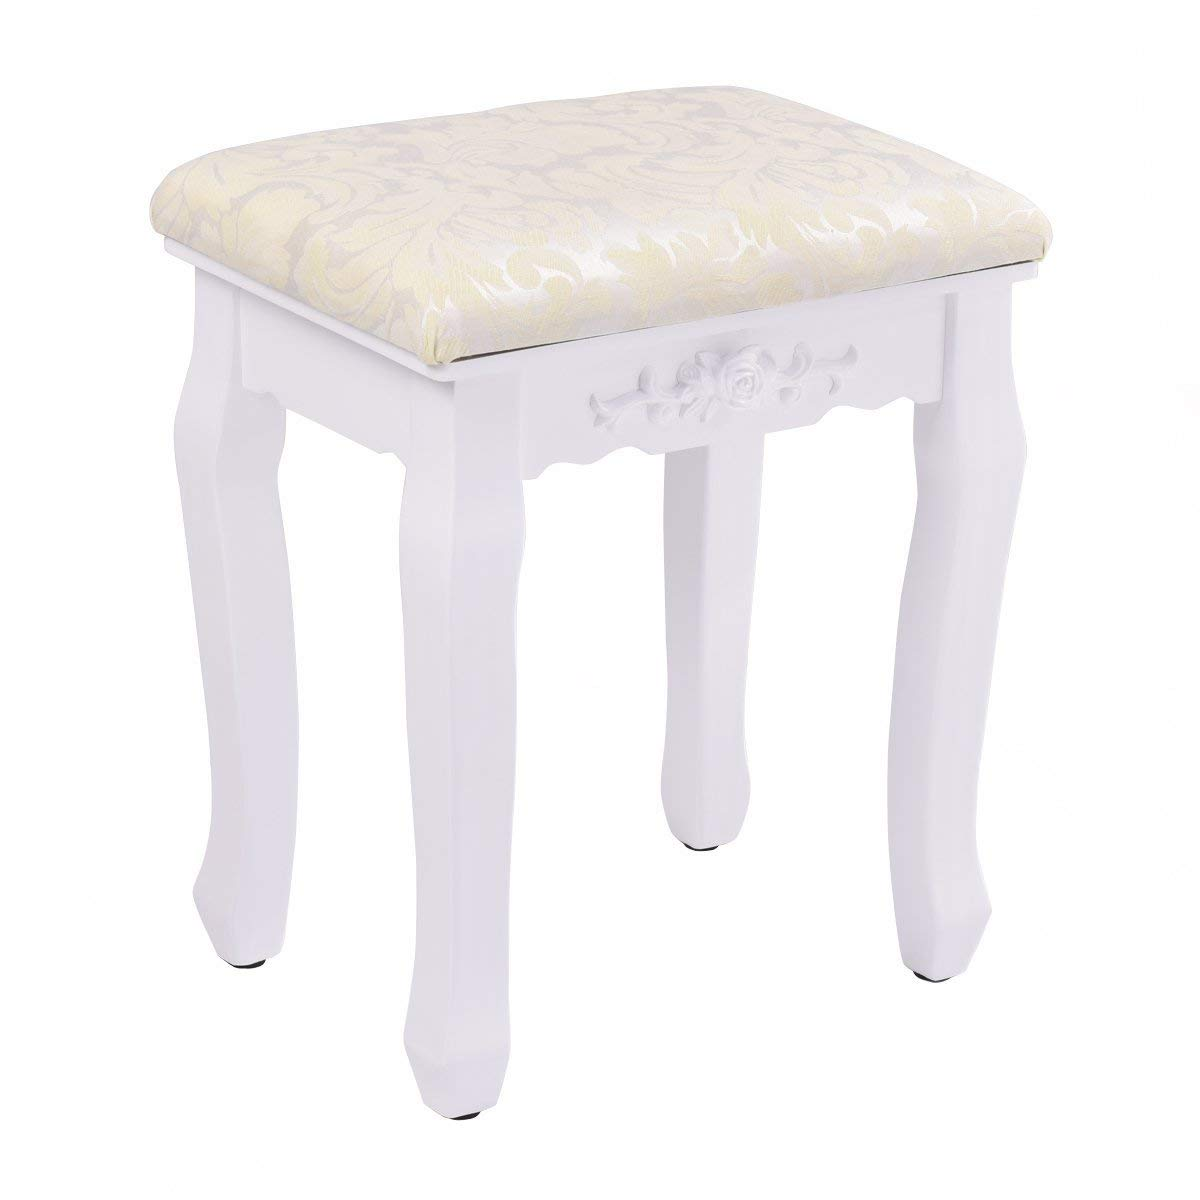 Casart Vanity Stool Makeup Bench Dressing Stools Retro Wave Foot Floor Pad for Scratch Solid Pine Wood Legs Thick Padded Cushioned Chair Piano Seat Bathroom Bedroom Large Vanity Benches White